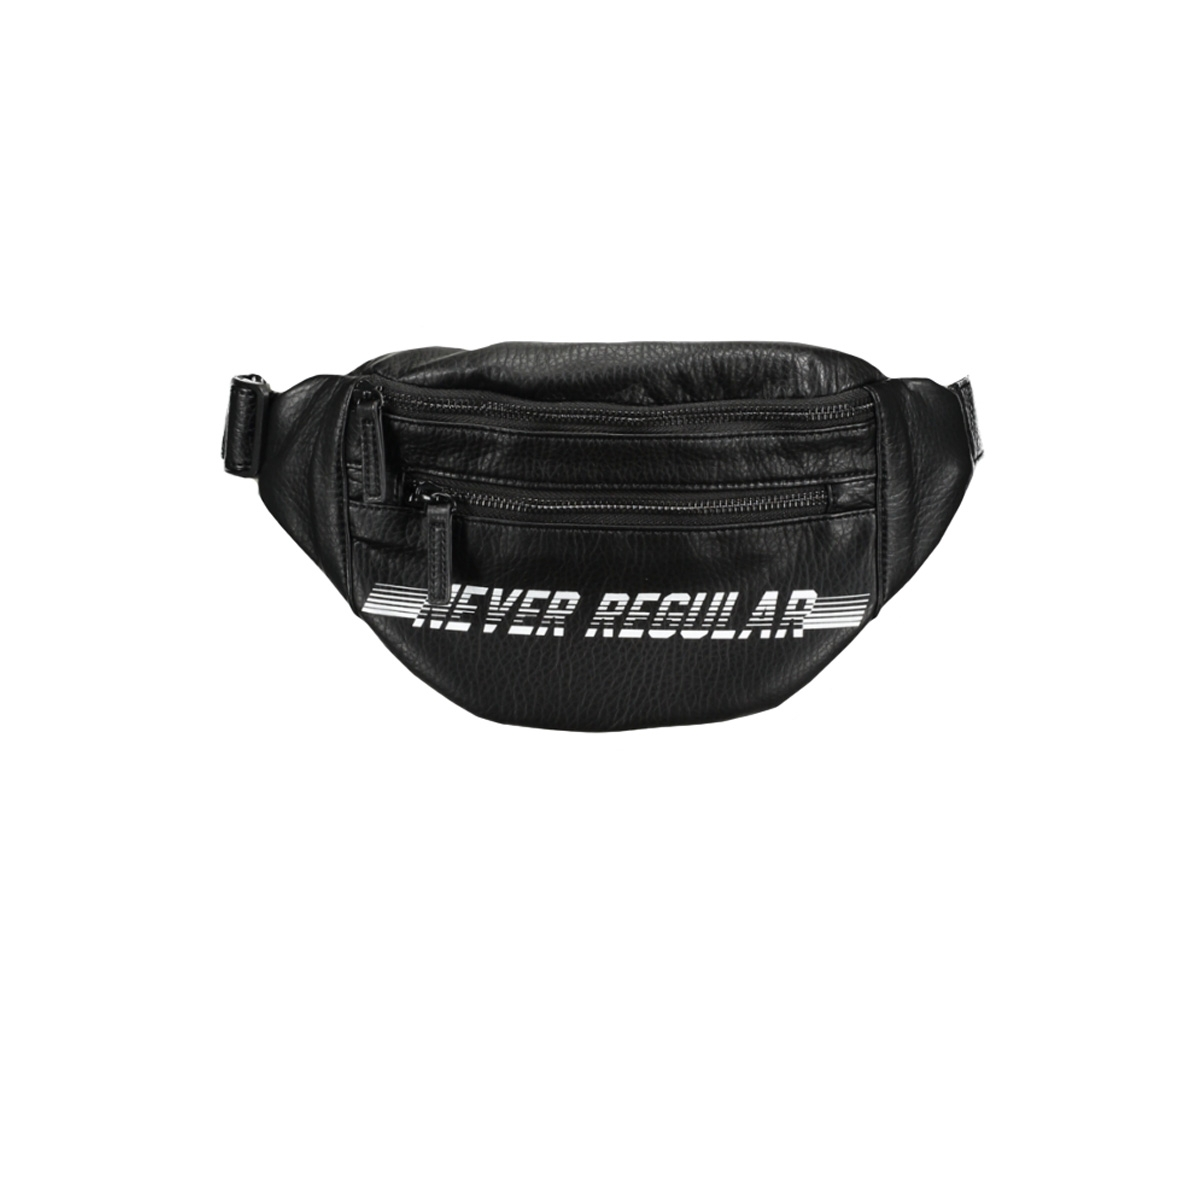 fanny pack 20 966 9103 10 days tas black